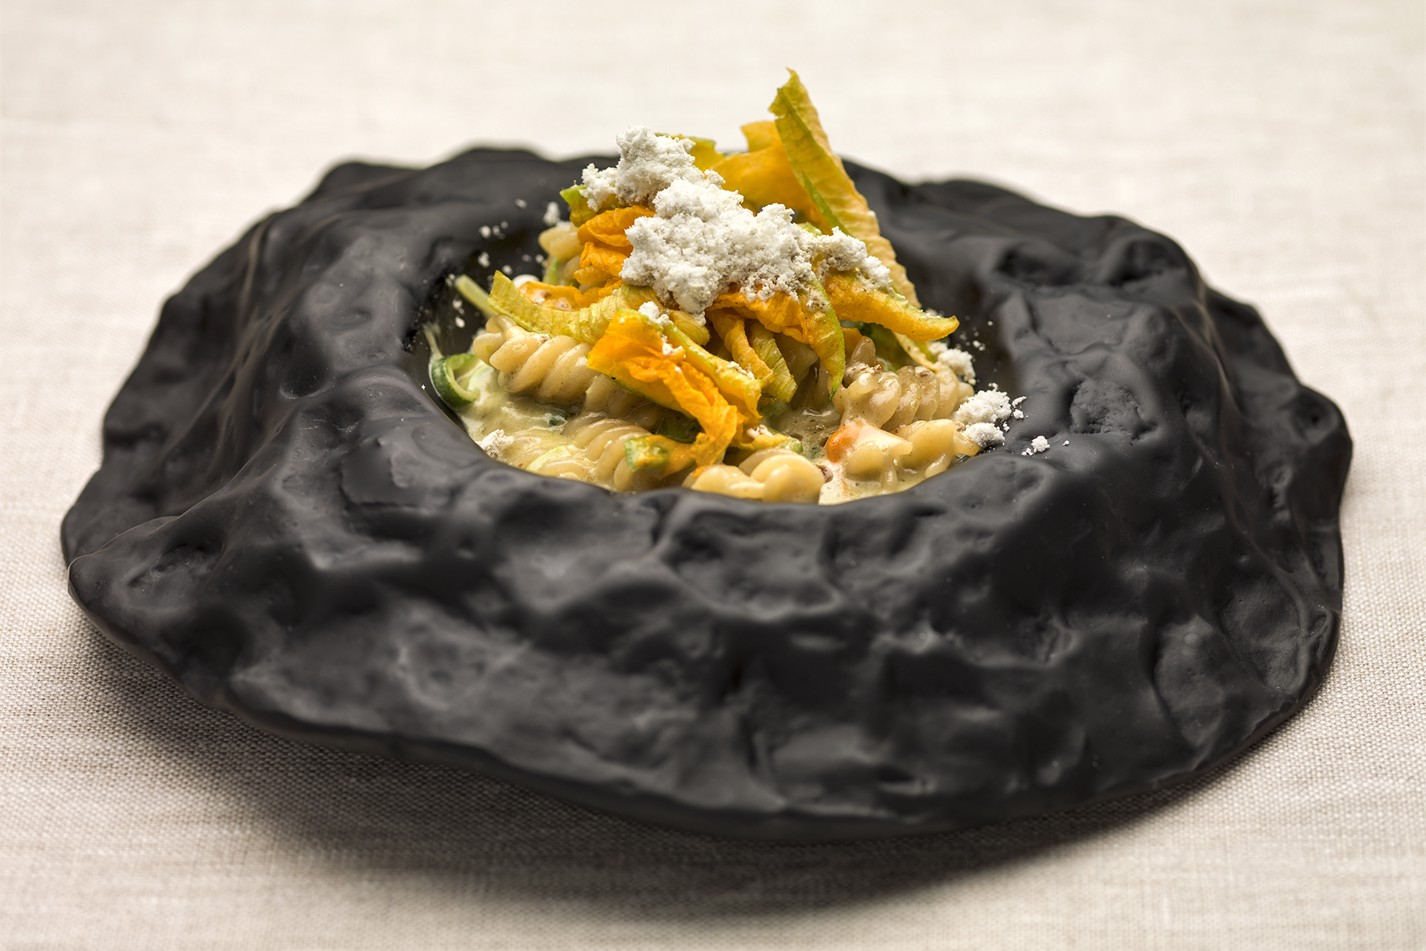 Jure Tomic, Slovenia – Fusilli with courgette, goat's cheese and pumpkin